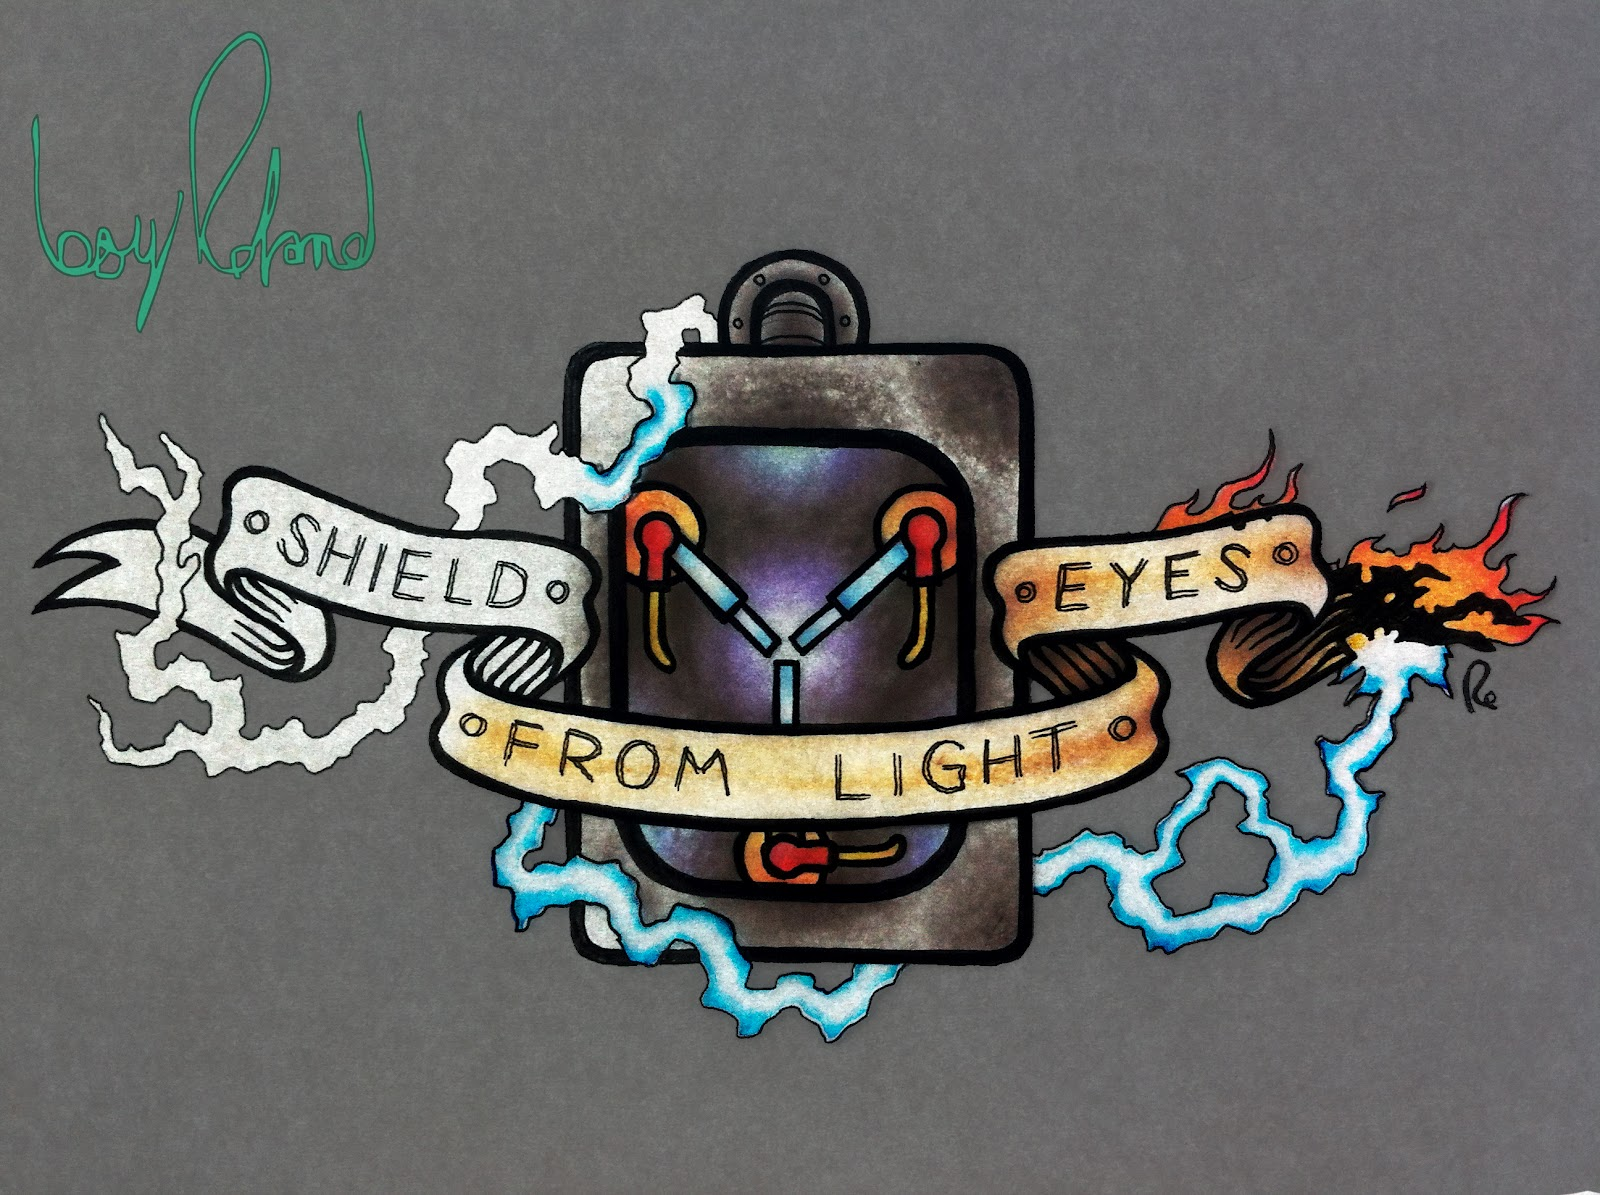 whats a boy roland shield eyes from light tattoo